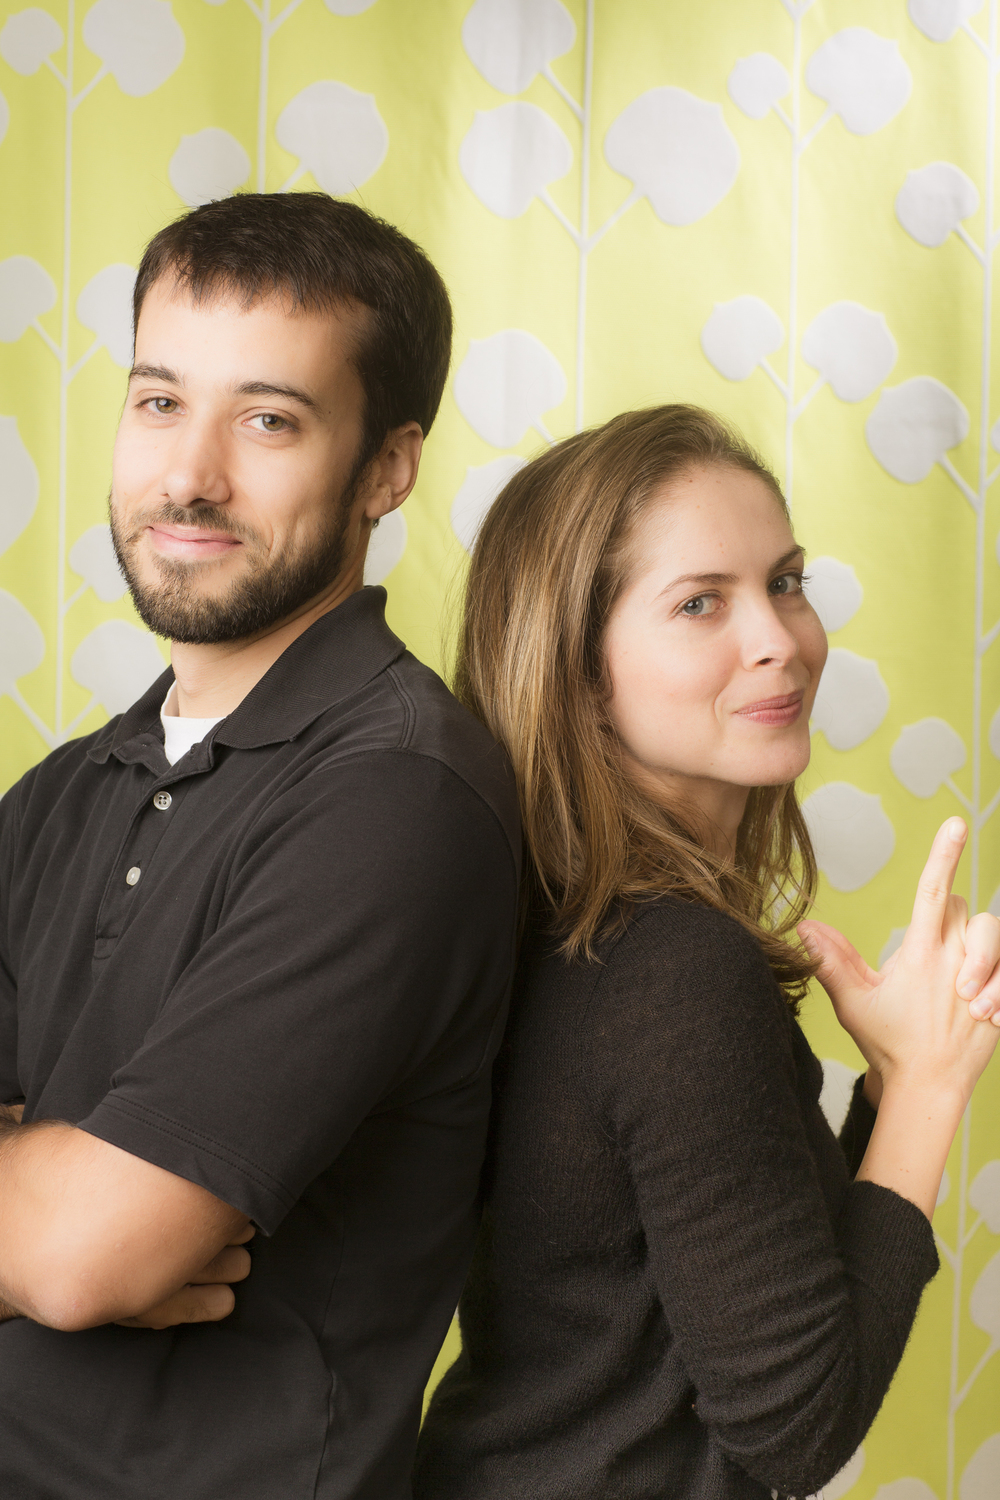 28 young couple family portrait studio session on fun green background.jpg